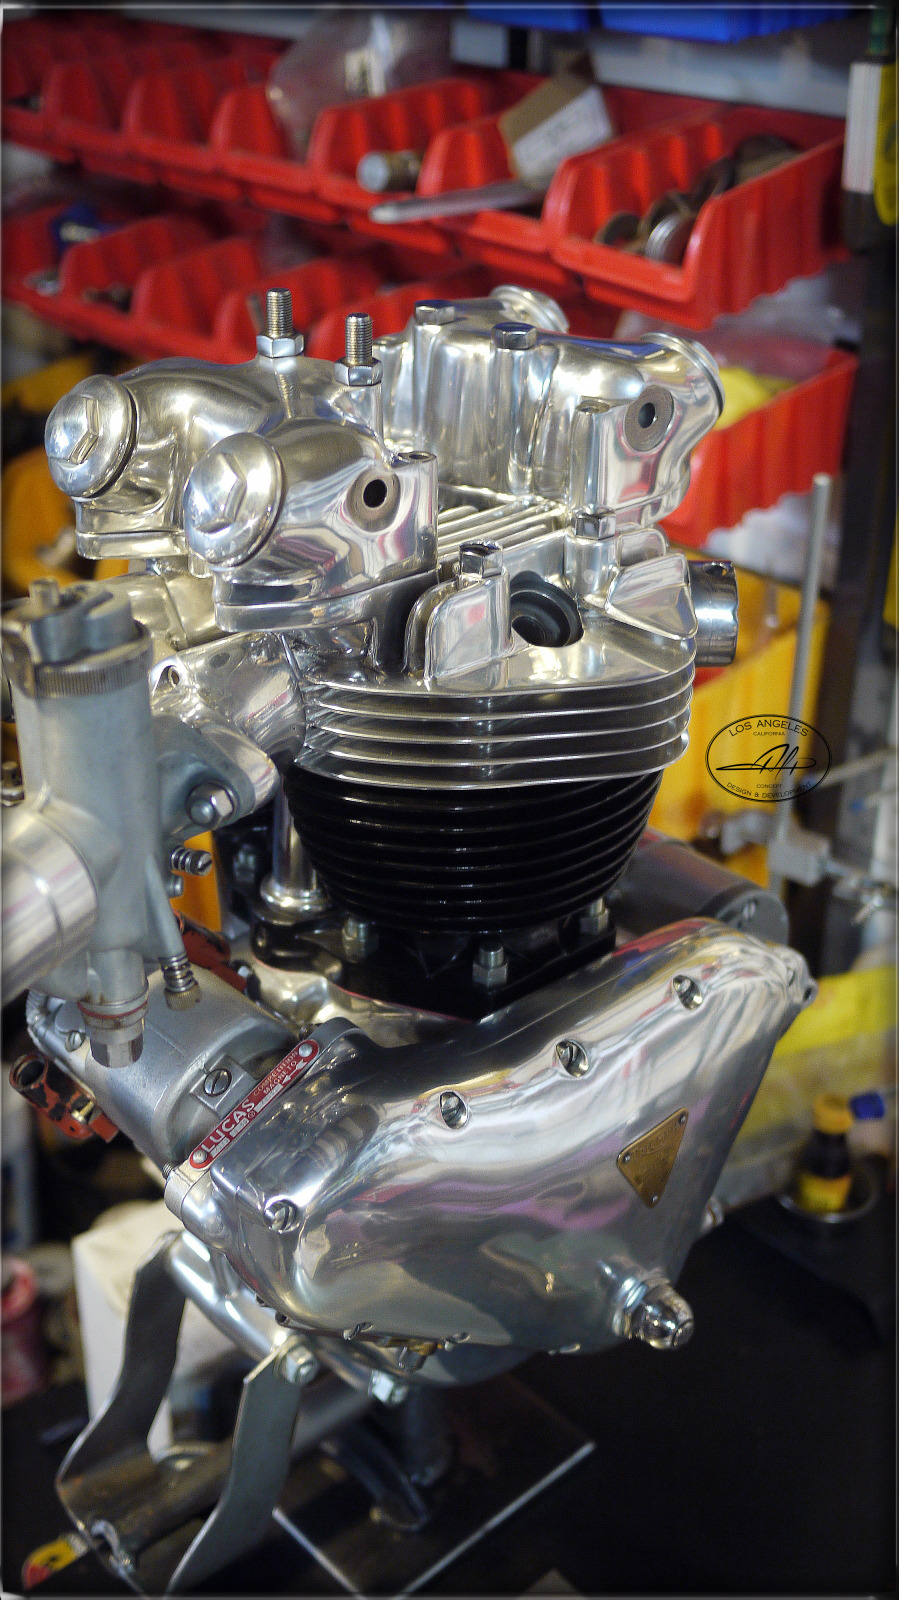 alp 650 pre unit custom engine